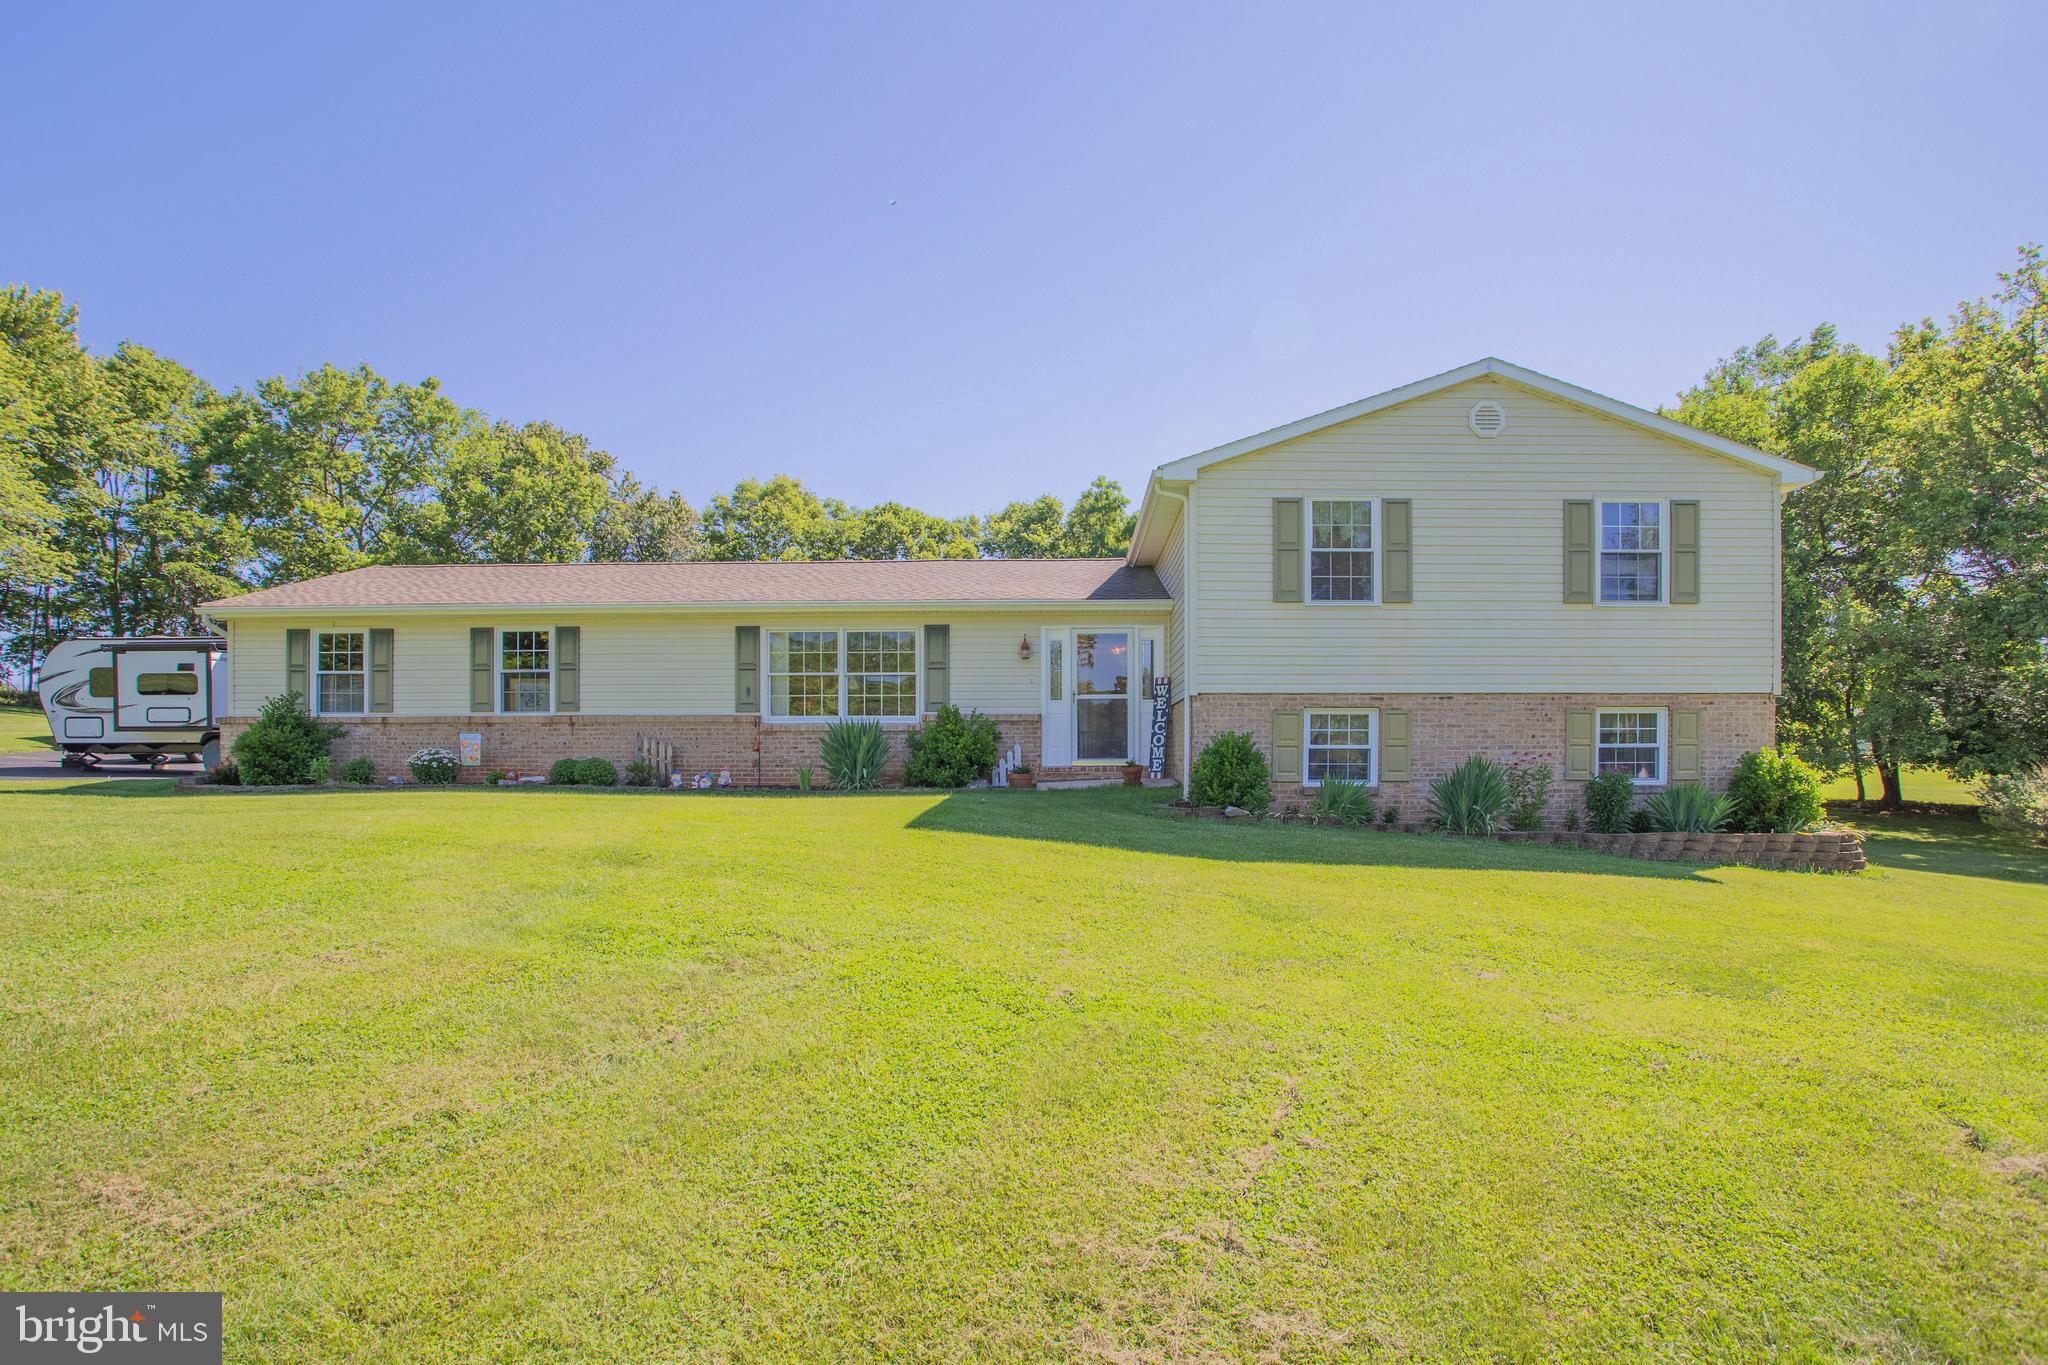 PEACE AND SERENITY is what you will find at 856 Oregon Trail located in beautiful Conestoga Estates.